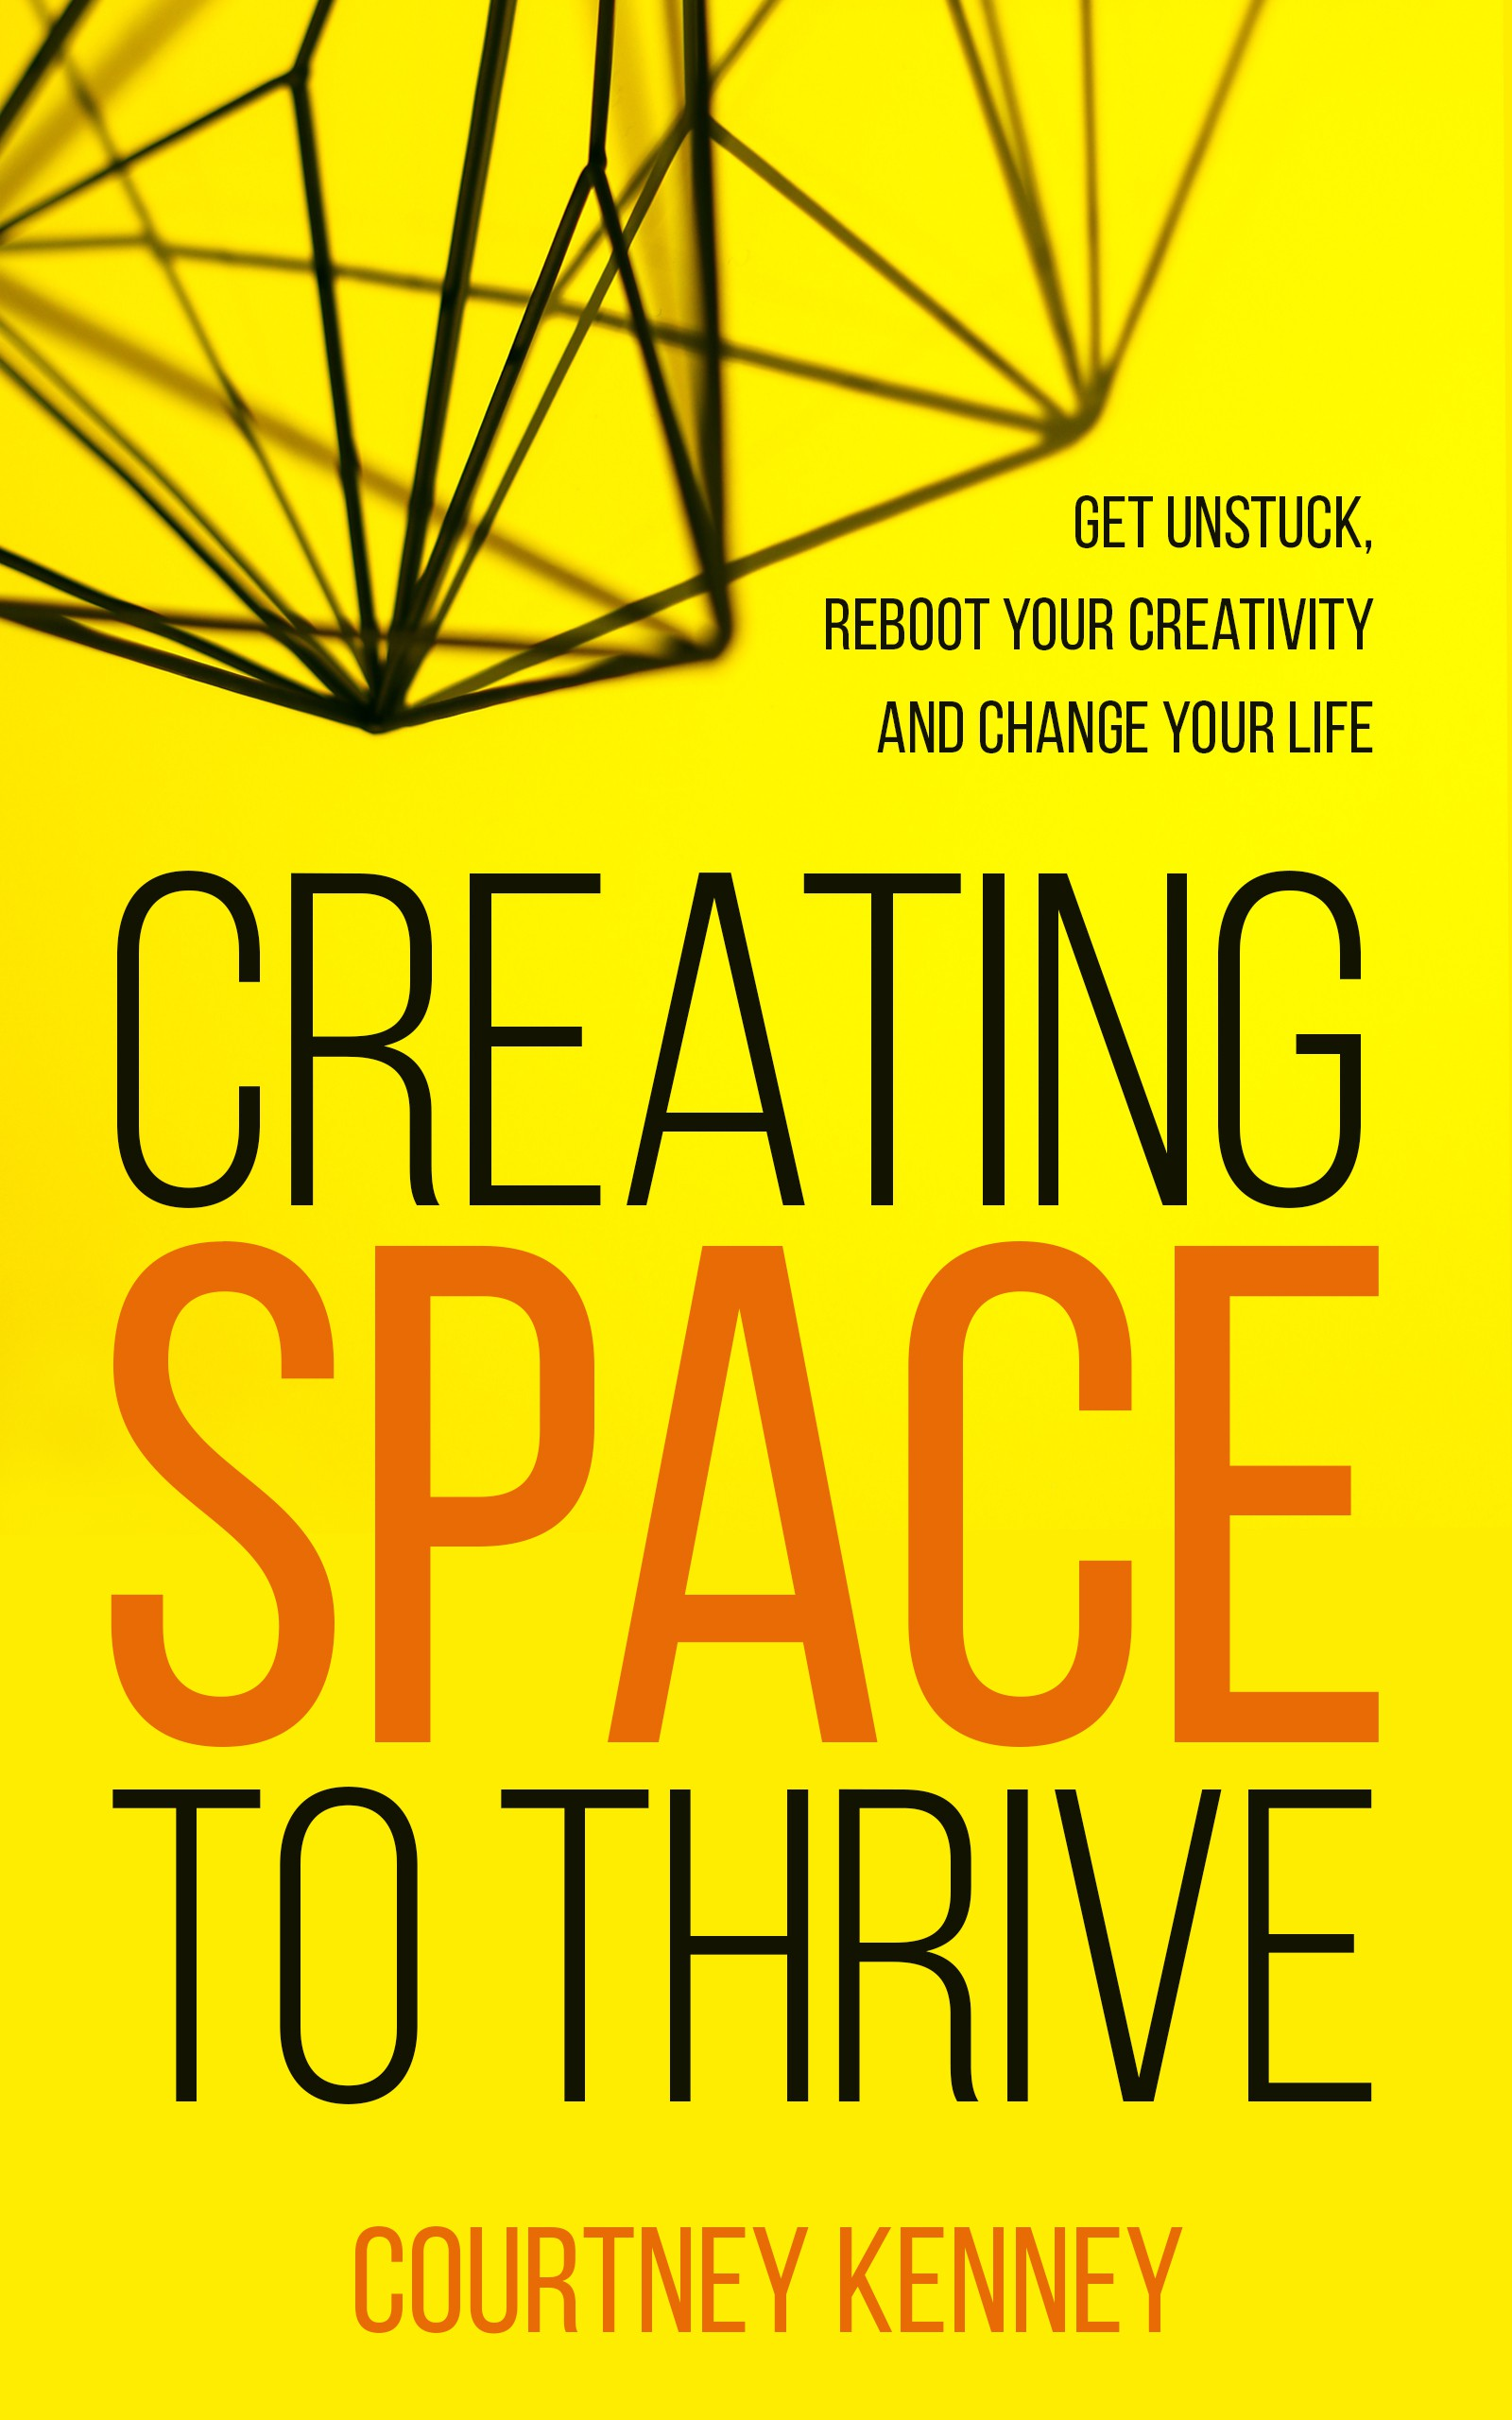 Design a cover for an exciting new book about rebooting your creativity